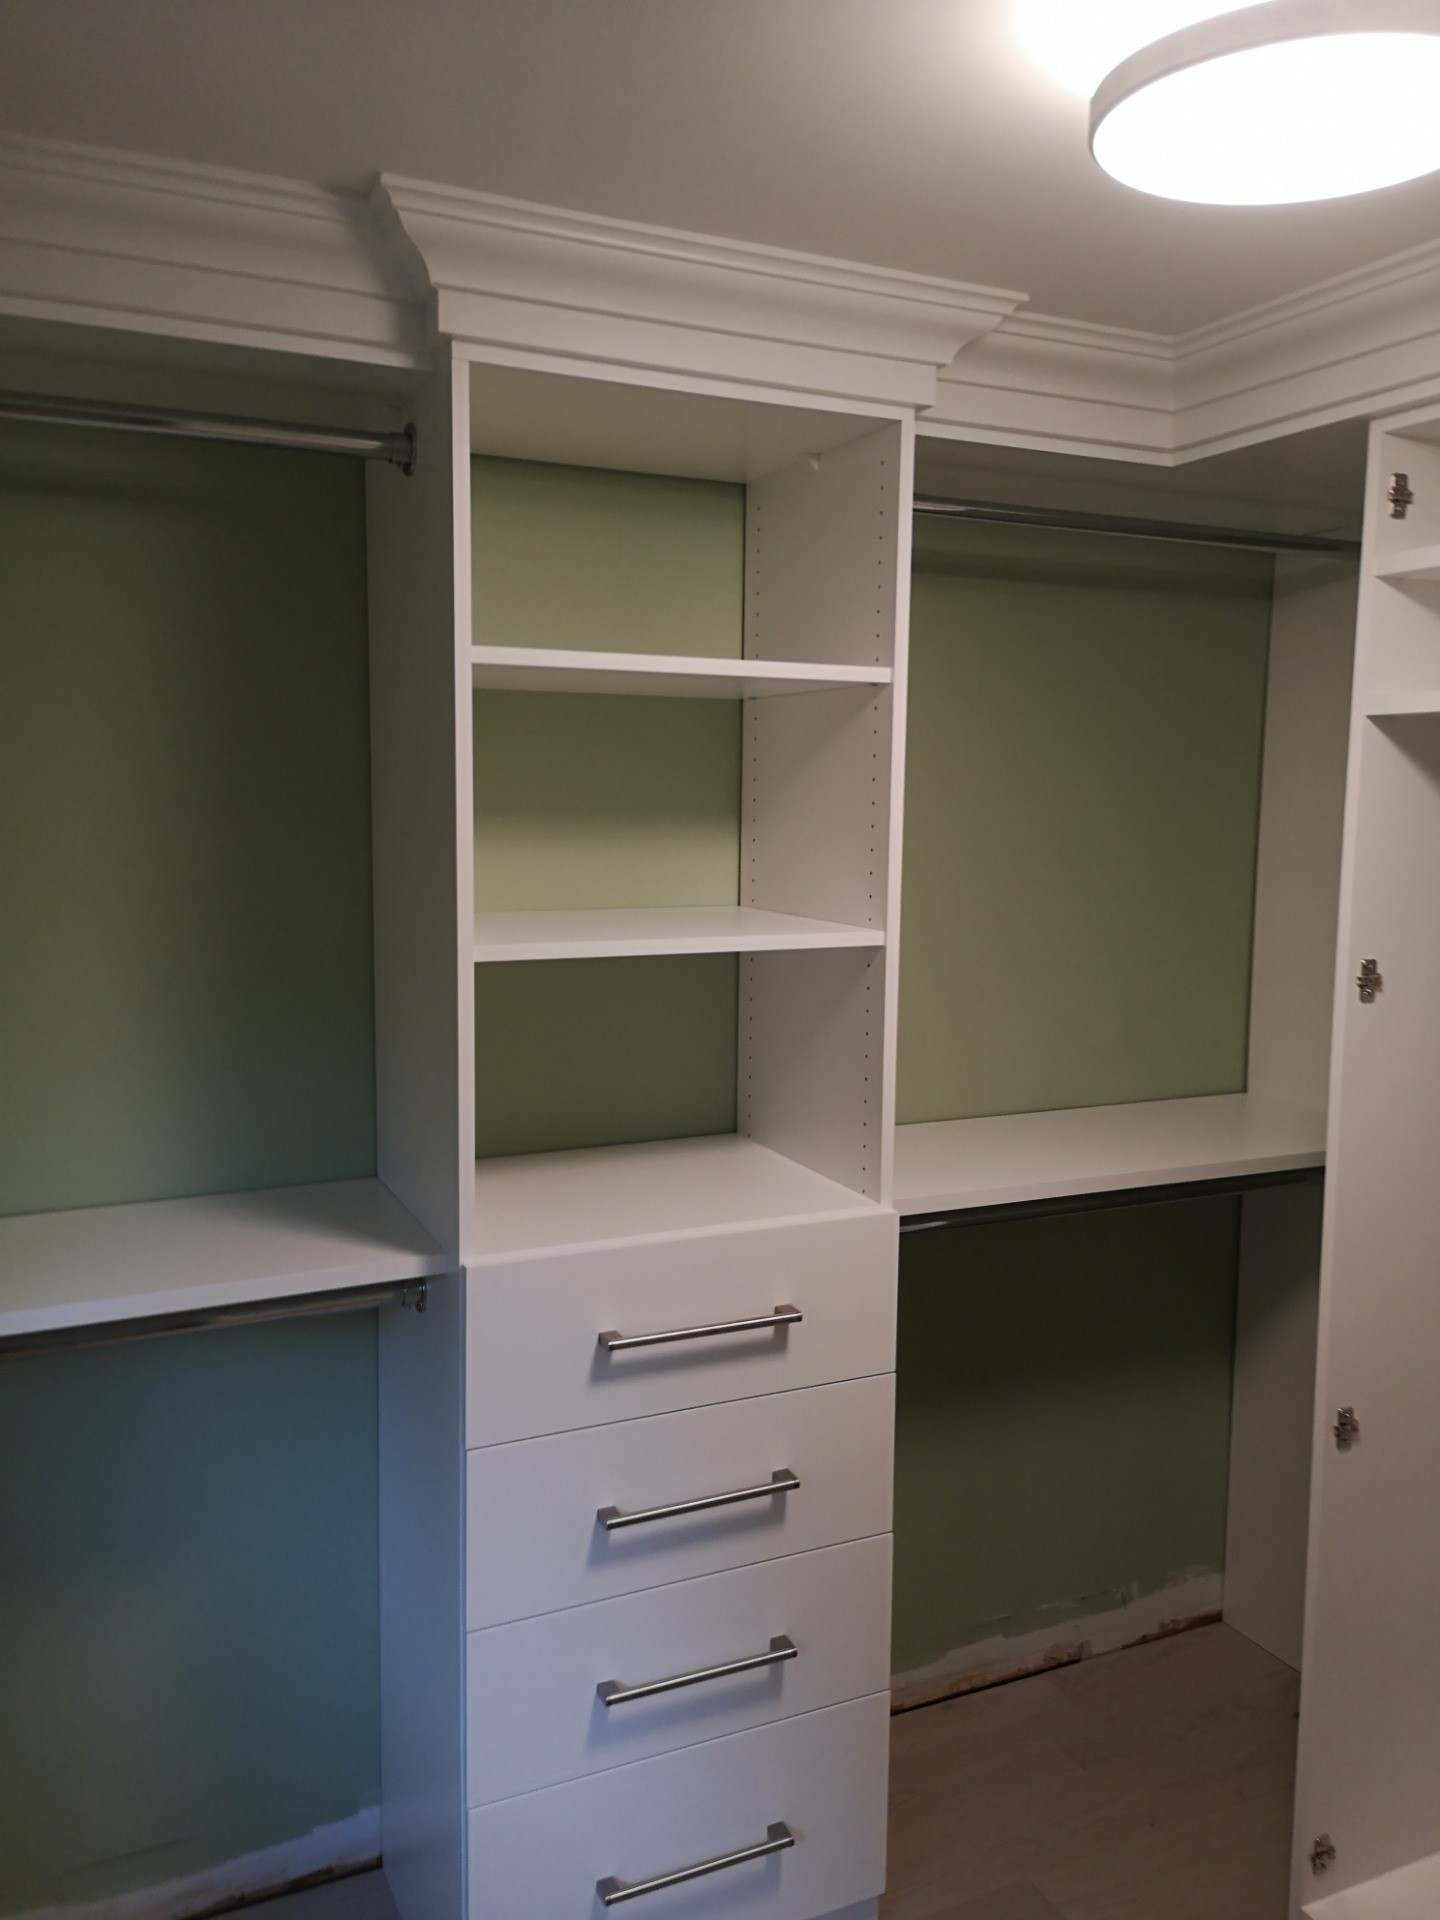 Custom Shelving Units by Space Age Closets in Toronto